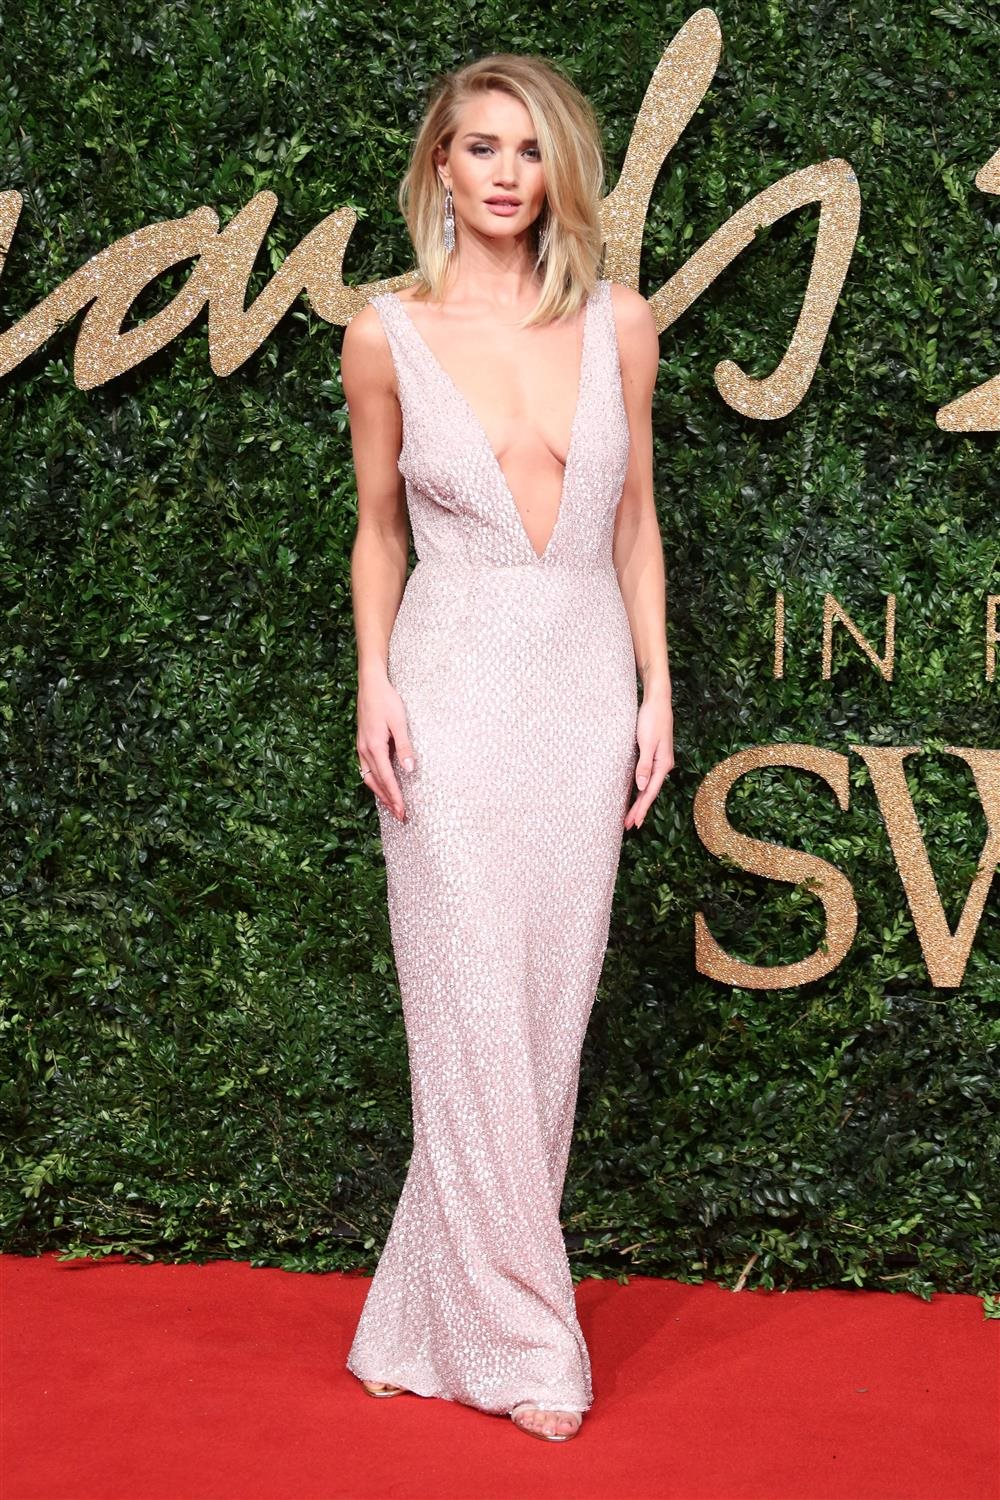 gtres u295704 078. Rosie Huntington-Whiteley